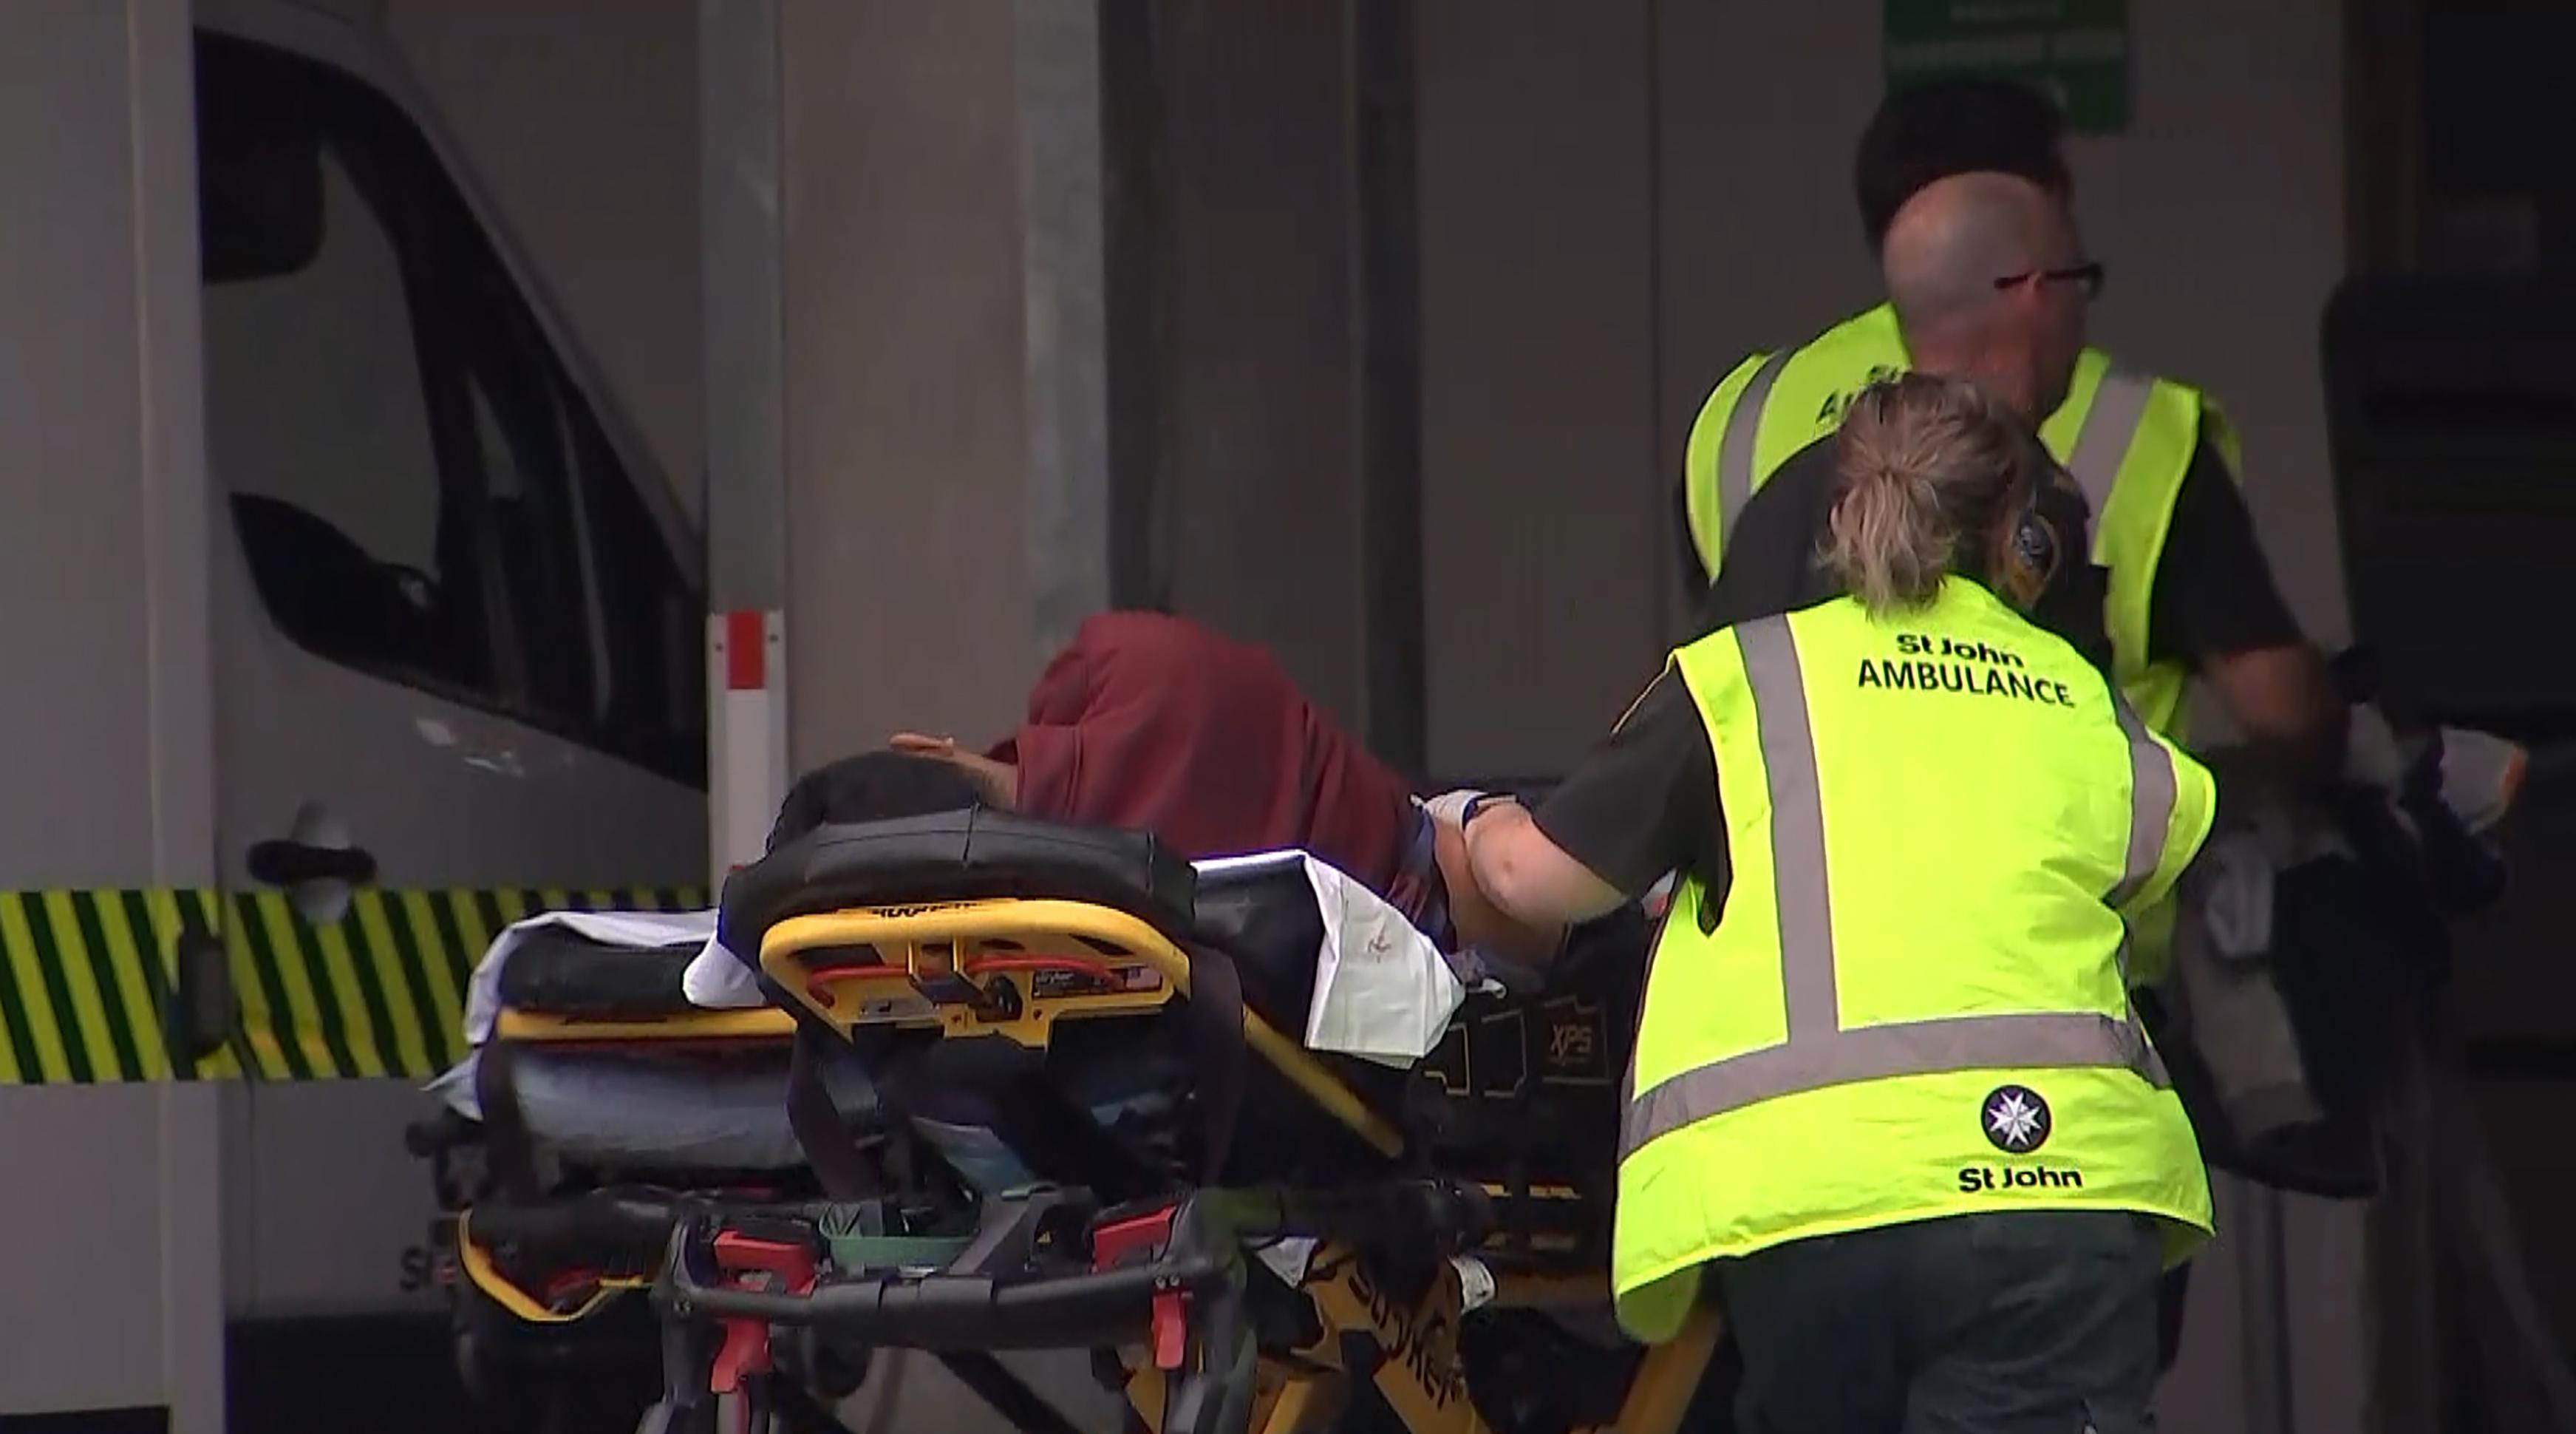 Footage Of Christchurch Shooting Wikipedia: Don't Share Christchurch Mosque Shooting Video, Twitter